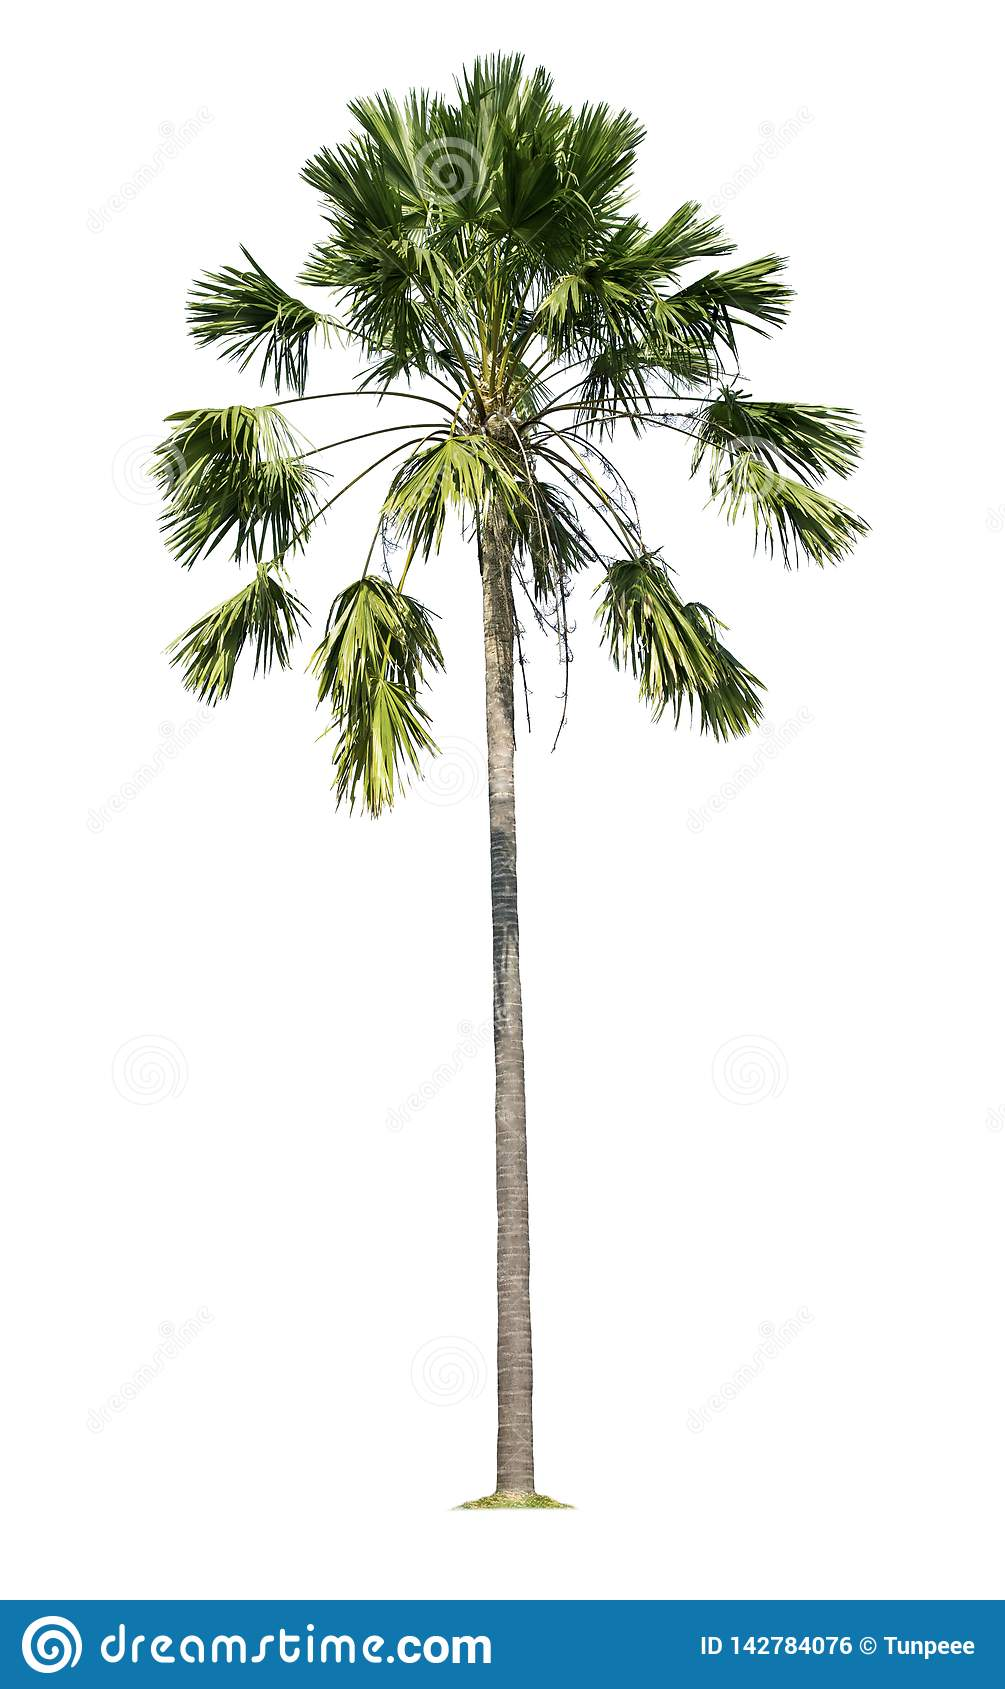 Palm tree isolated on white background with clipping paths